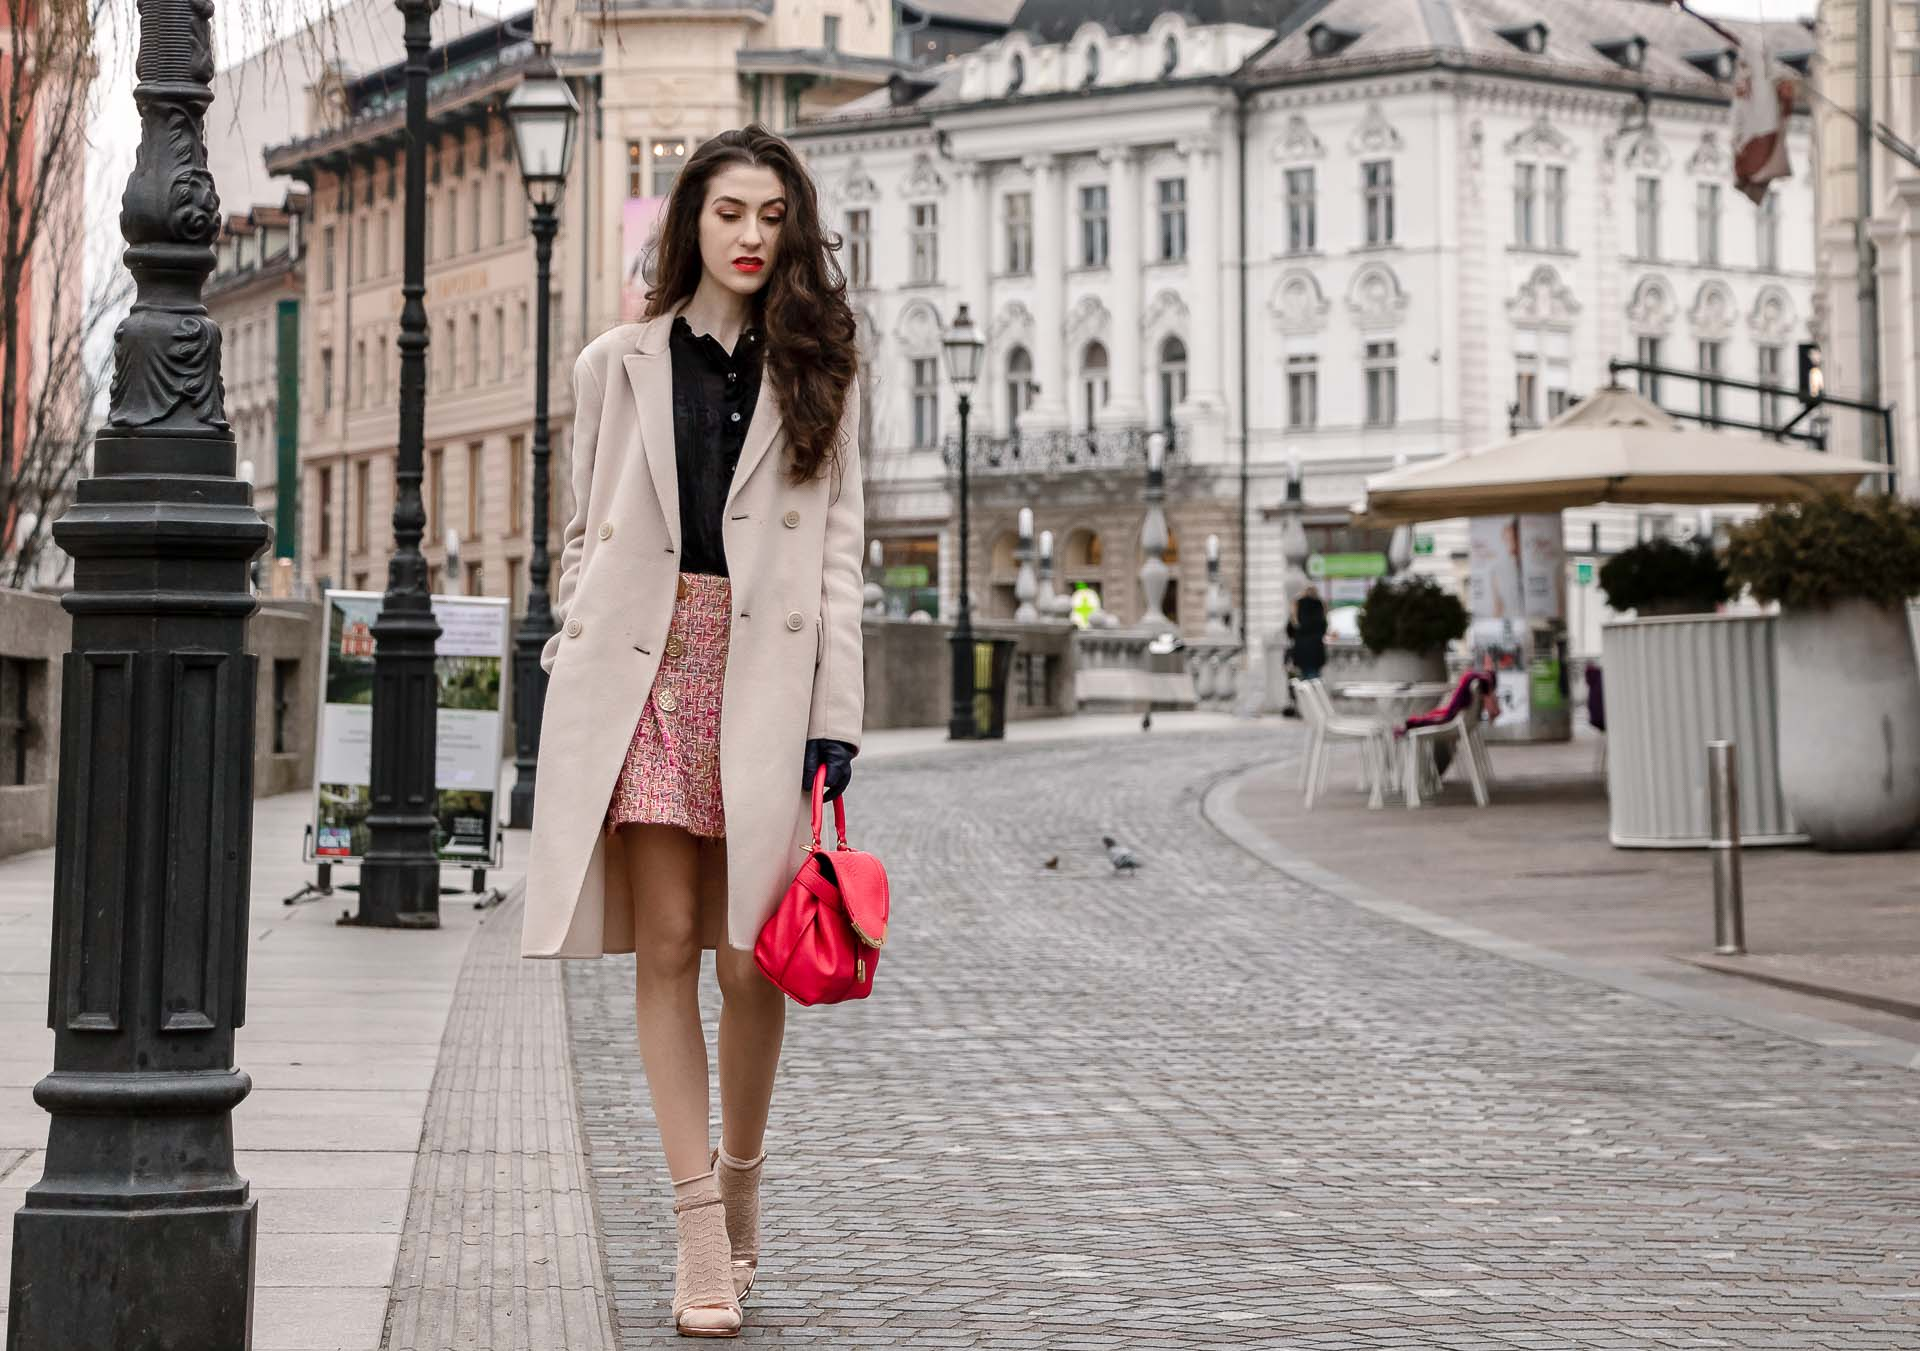 Fashion Blogger Veronika Lipar of Brunette from Wall Street wearing bronze socks and sandals from Stuart Weitzman, tweed Storets minis skirt, black blouse, off white Weekend Maxmara coat while walking down the street in Ljubljana